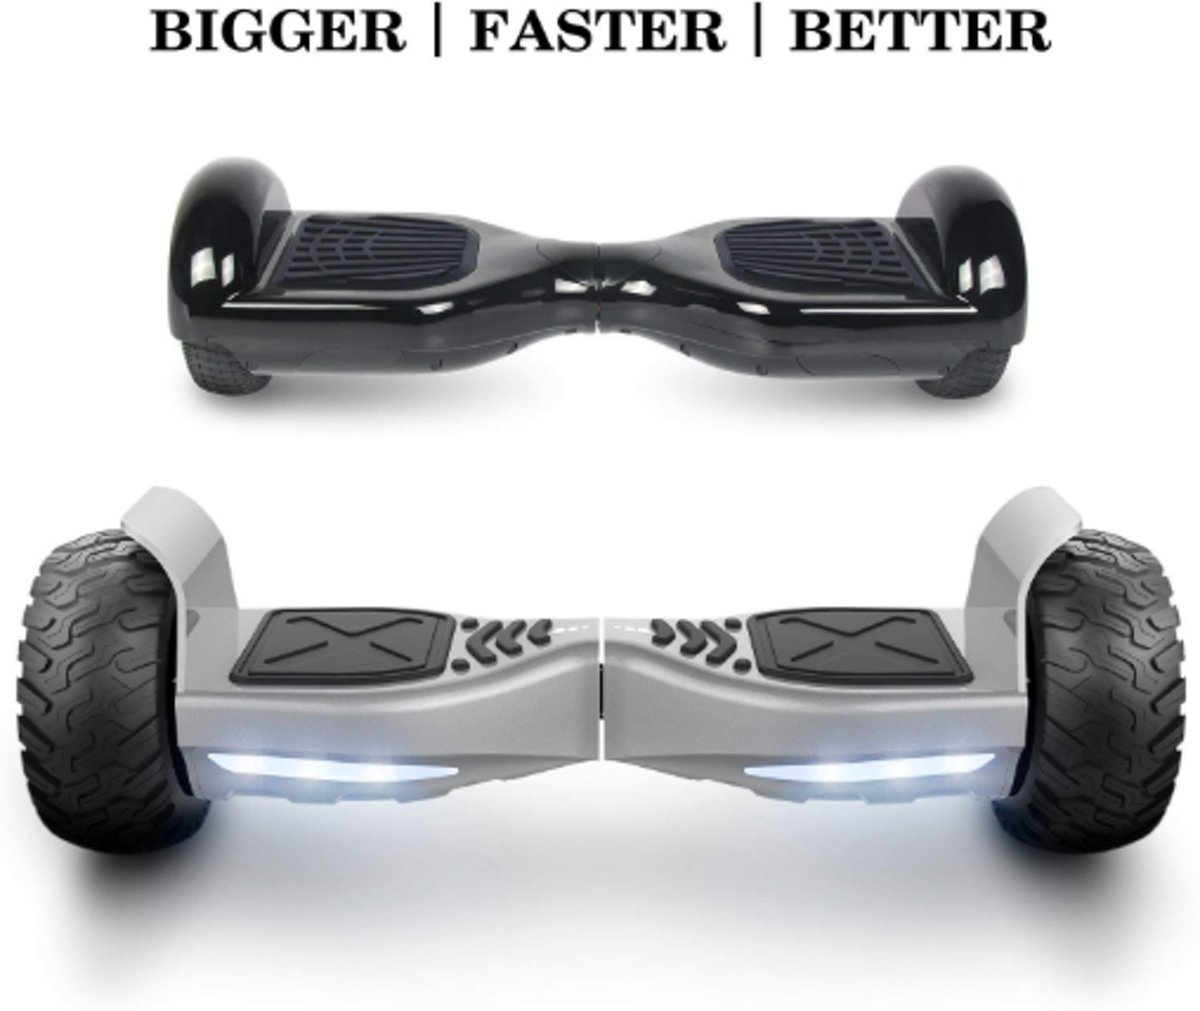 I-CIGO HOVERBOARD HUMMER Zelfbalancerende scooter ALLE TERREINEN 8.5 INCHES Off Road App Functie met V5 Bluetooth speaker&TAOTAO 2018 SOFTWARE (ZILVER)